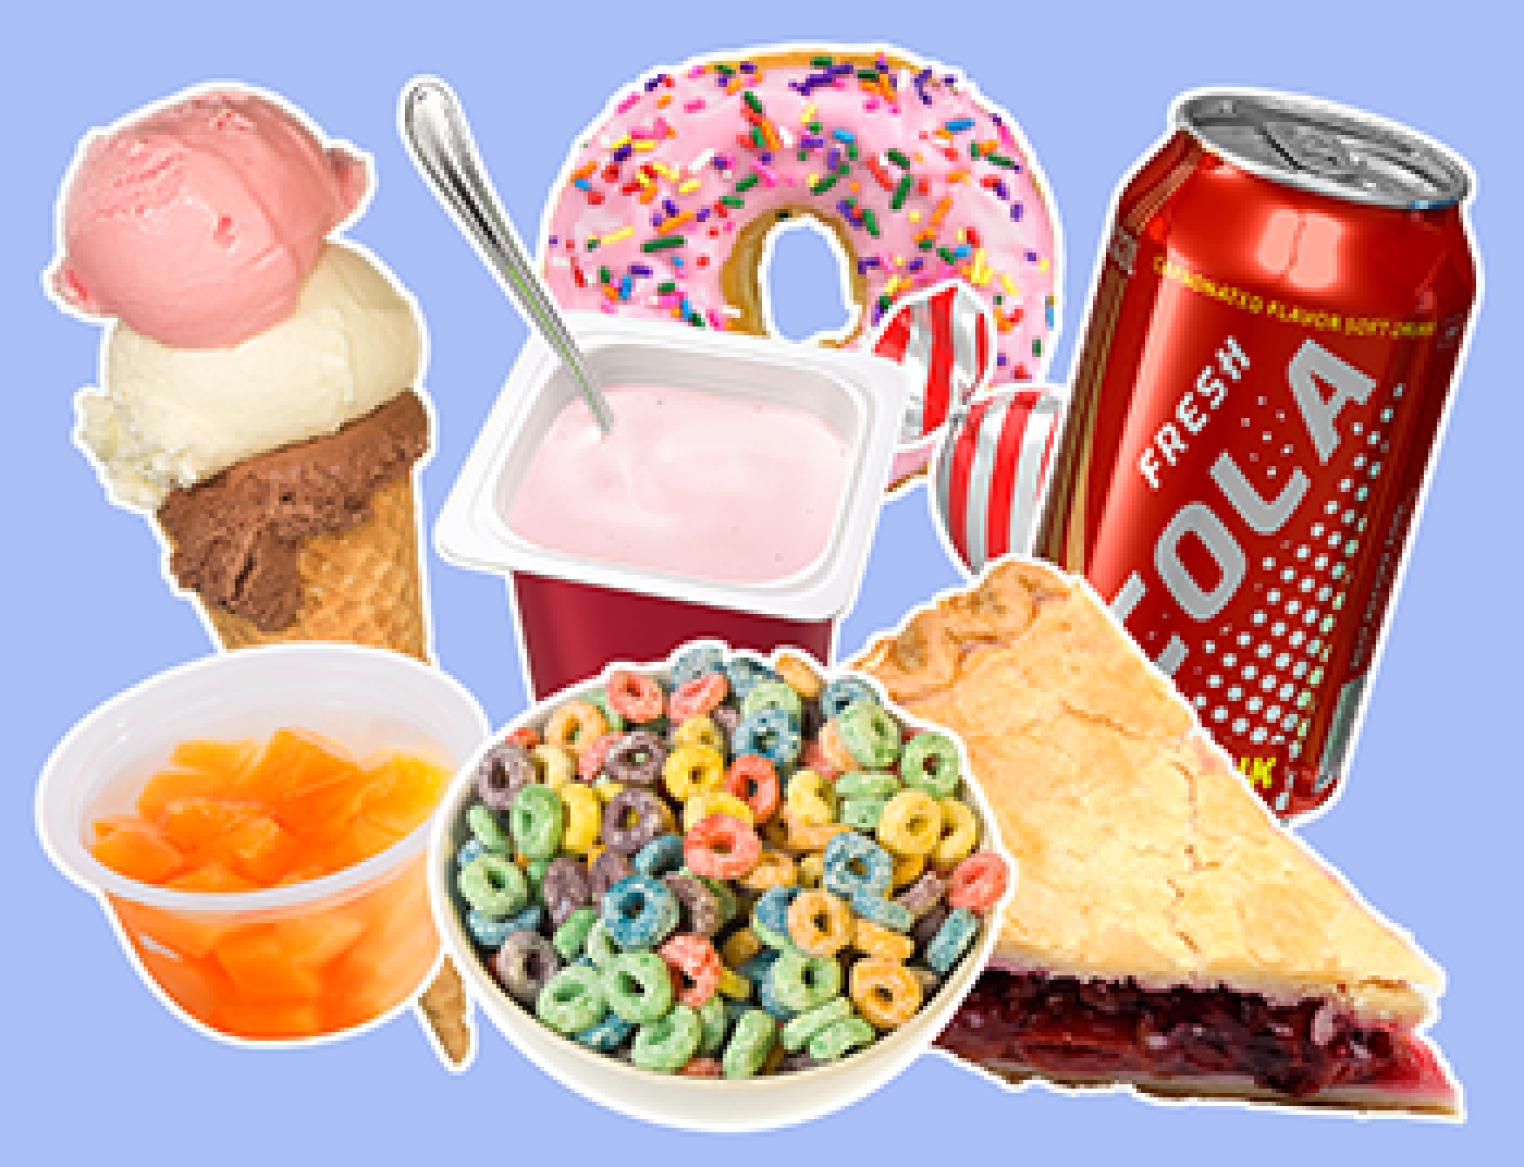 SUGAR is everywhere – you eat way more than you think!